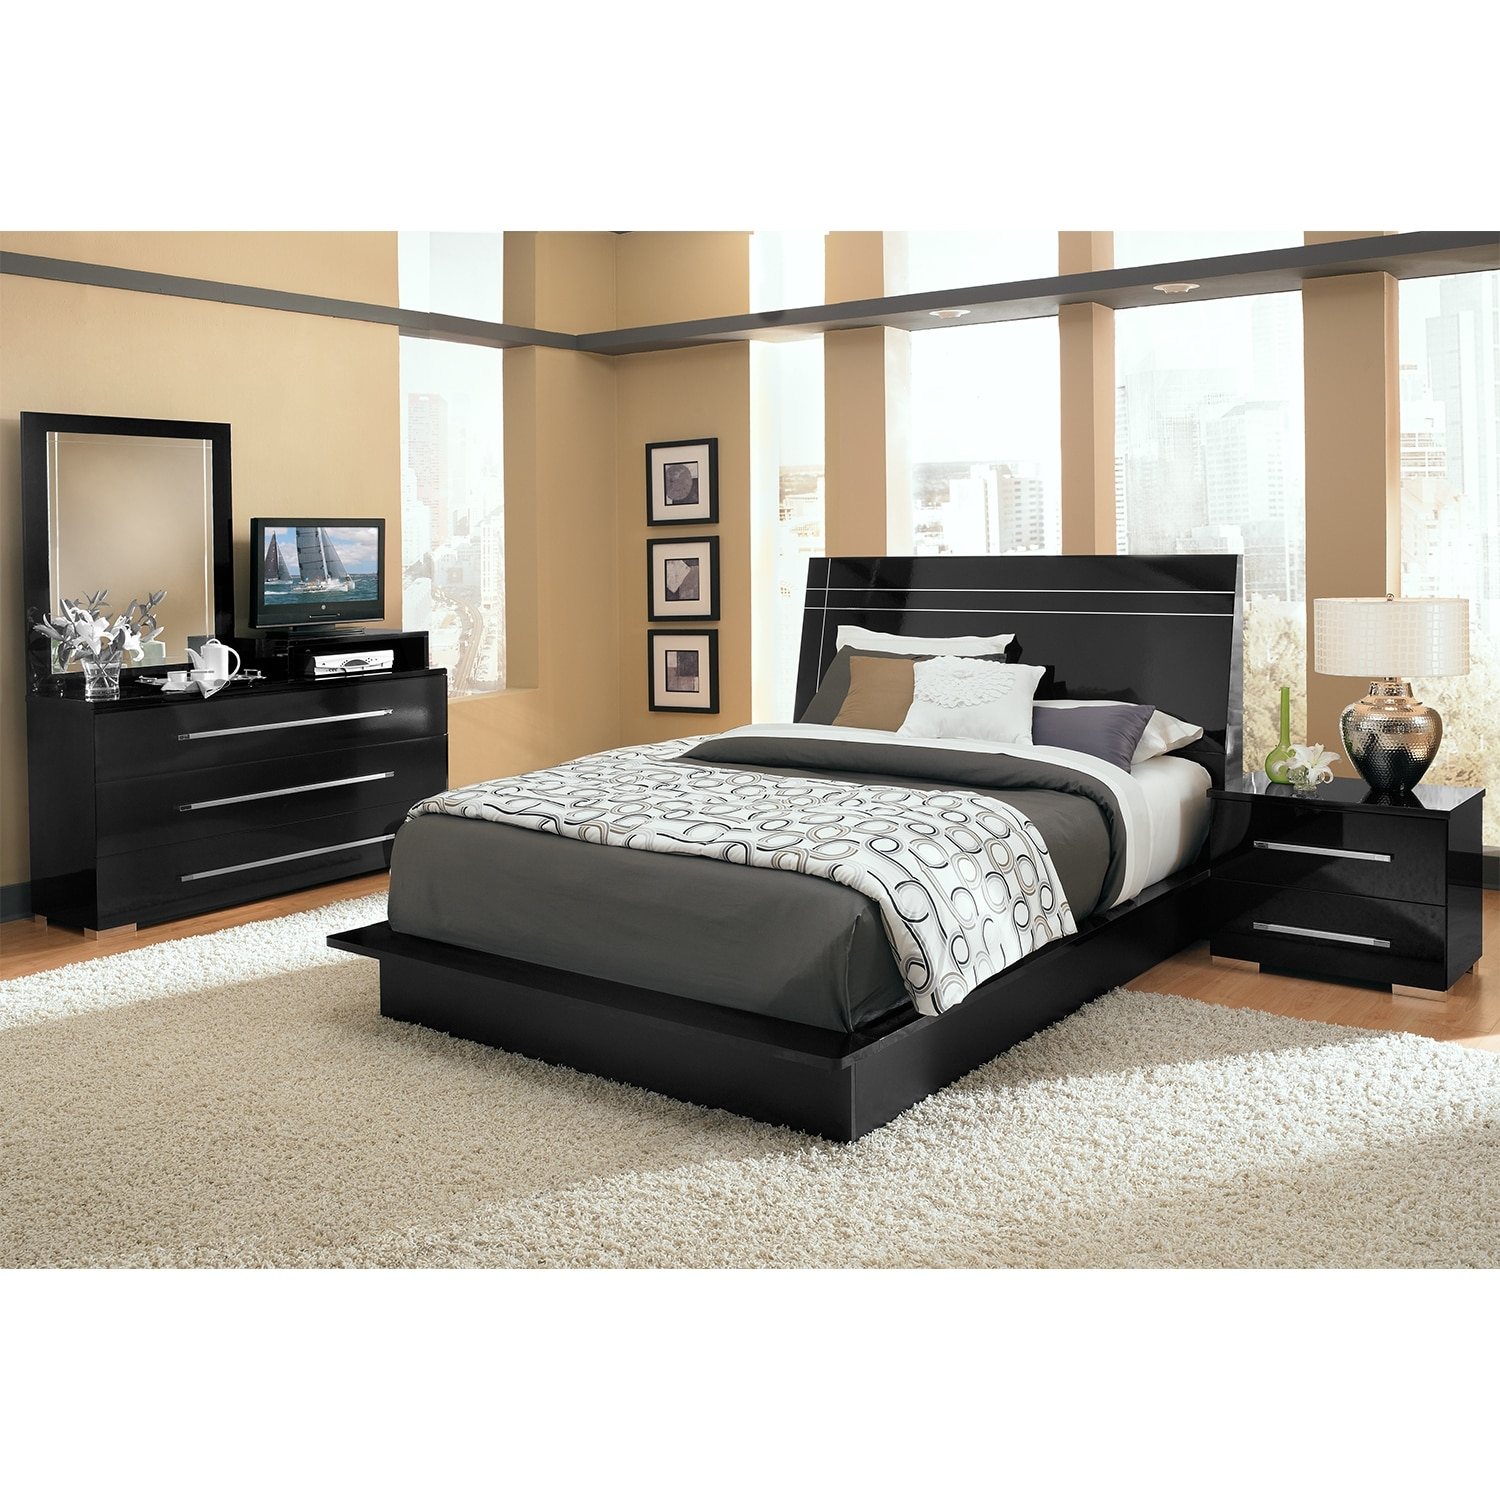 Bedroom Furniture - Dimora 6-Piece King Panel Bedroom Set with Media Dresser - Black